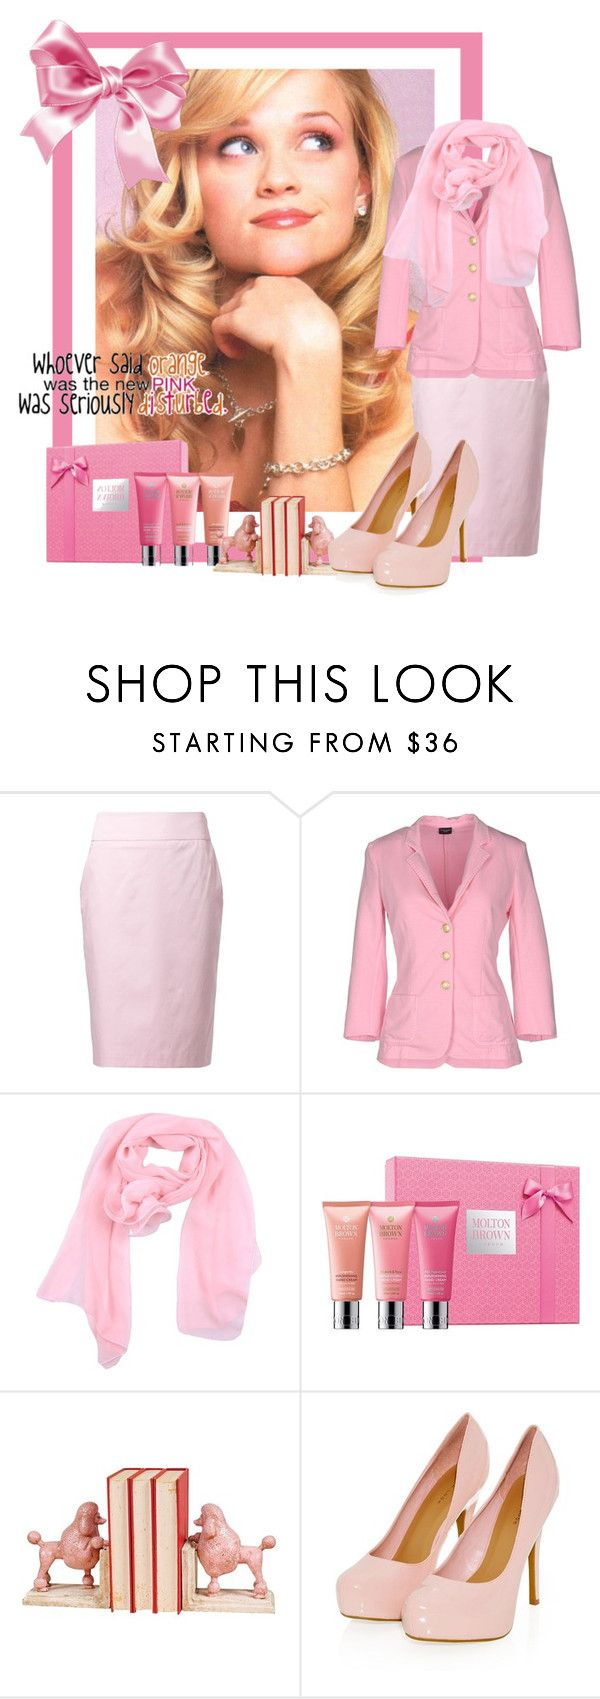 """Legally Blonde"" by alaskayoung-383 ❤ liked on Polyvore featuring Daniel Hechter, Snobby Sheep, Lunatic, Molton Brown and By Charlotte"